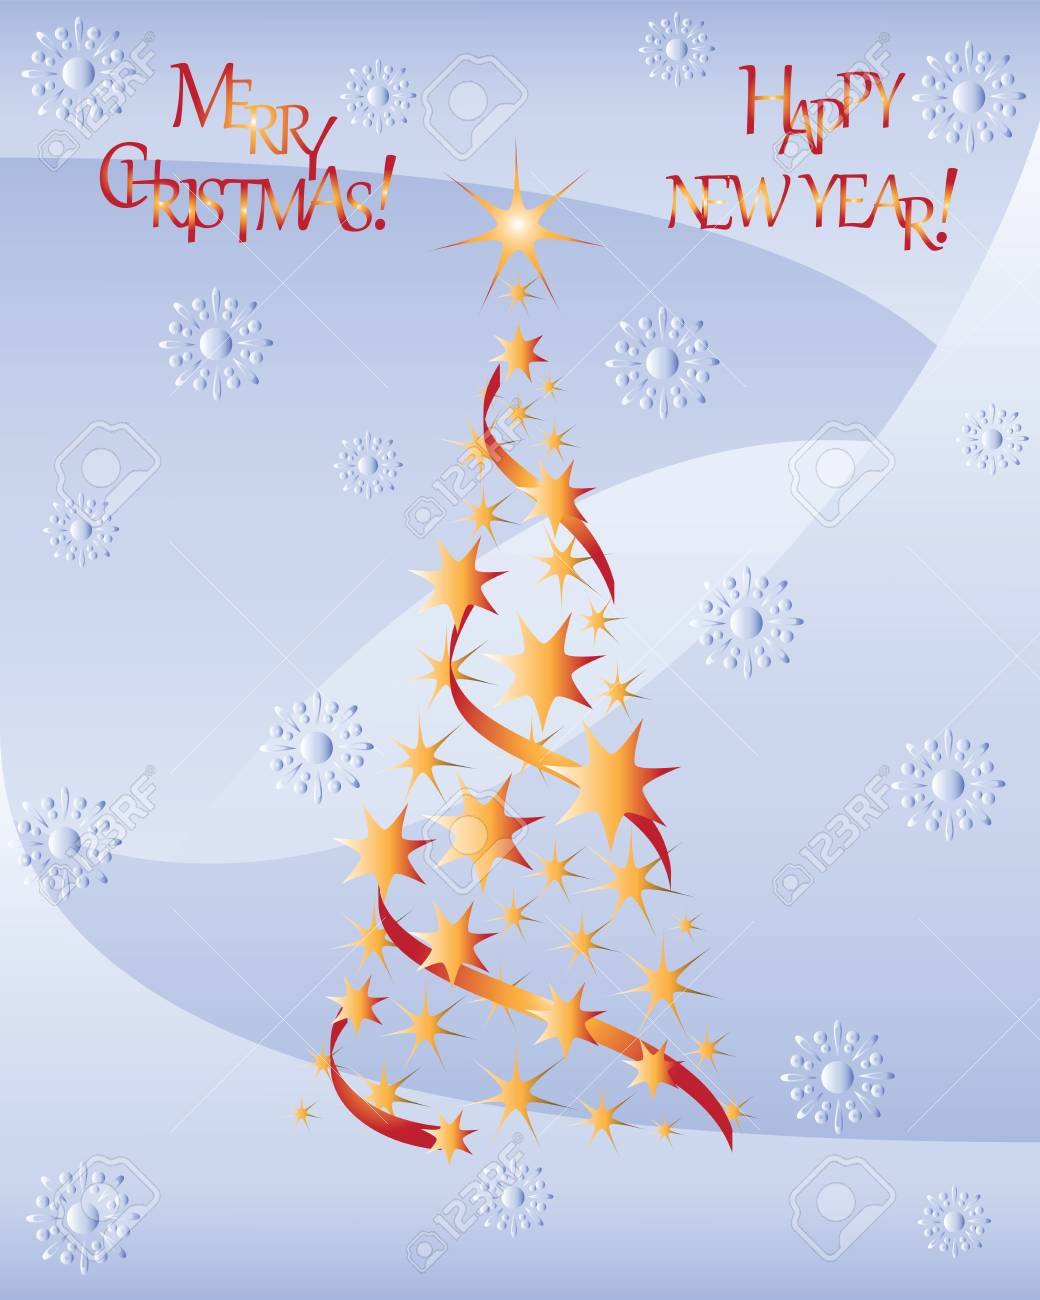 Starry Christmas Treerry Christmas And Happy New Year Design